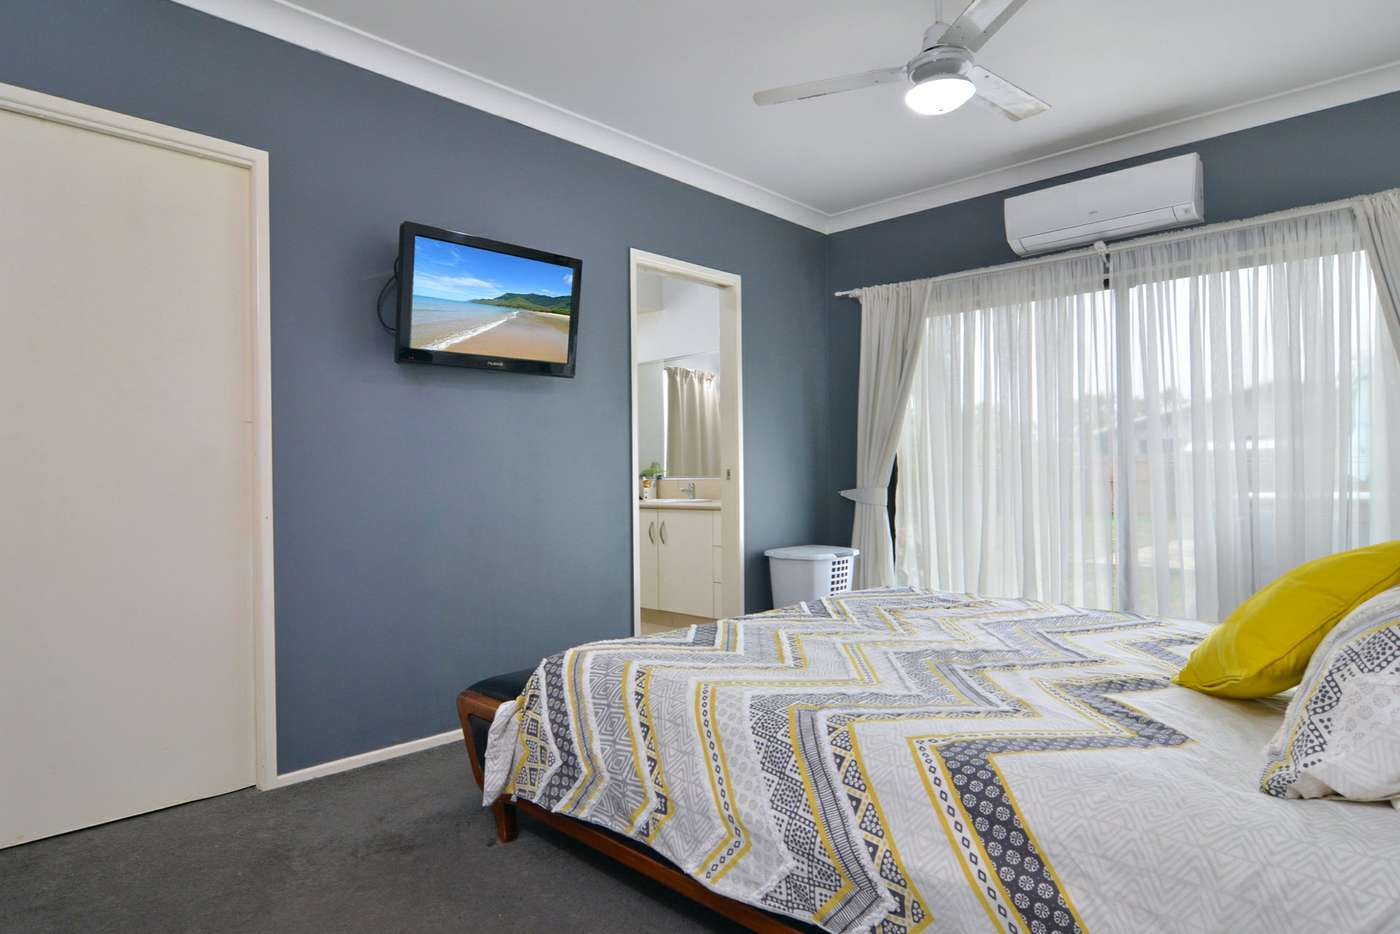 Seventh view of Homely house listing, 62 Cooya Beach Road, Cooya Beach QLD 4873